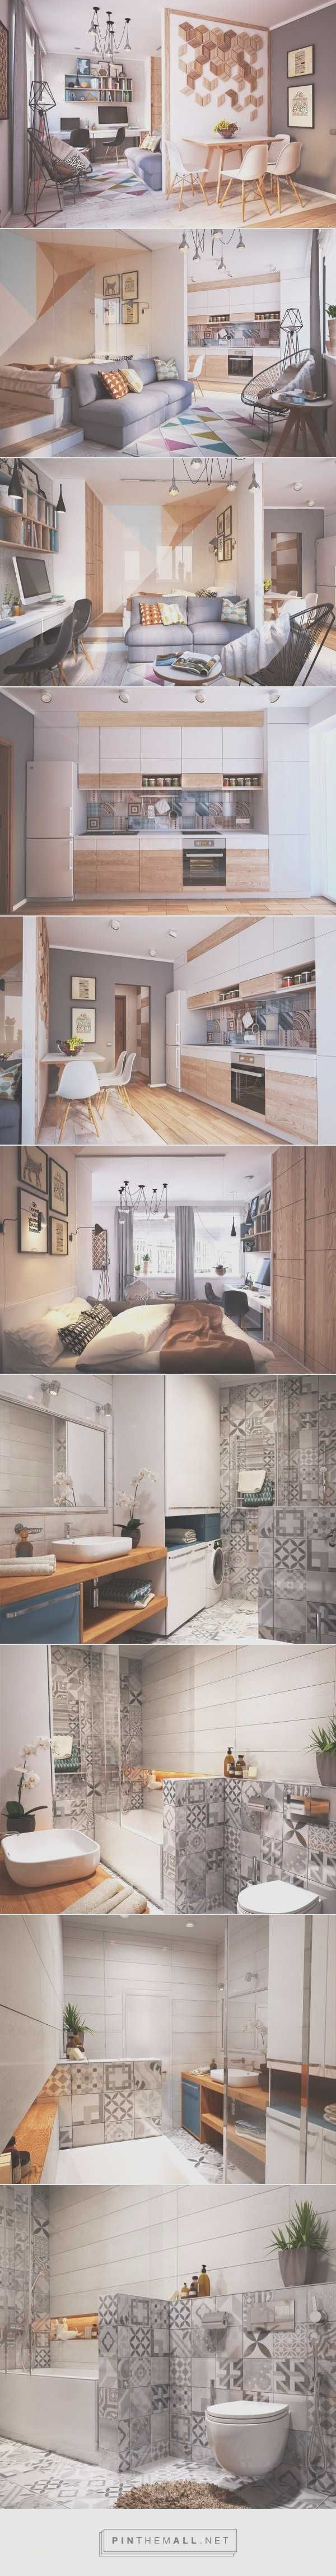 Studio apartment design ideas 500 square feet new living small with ...